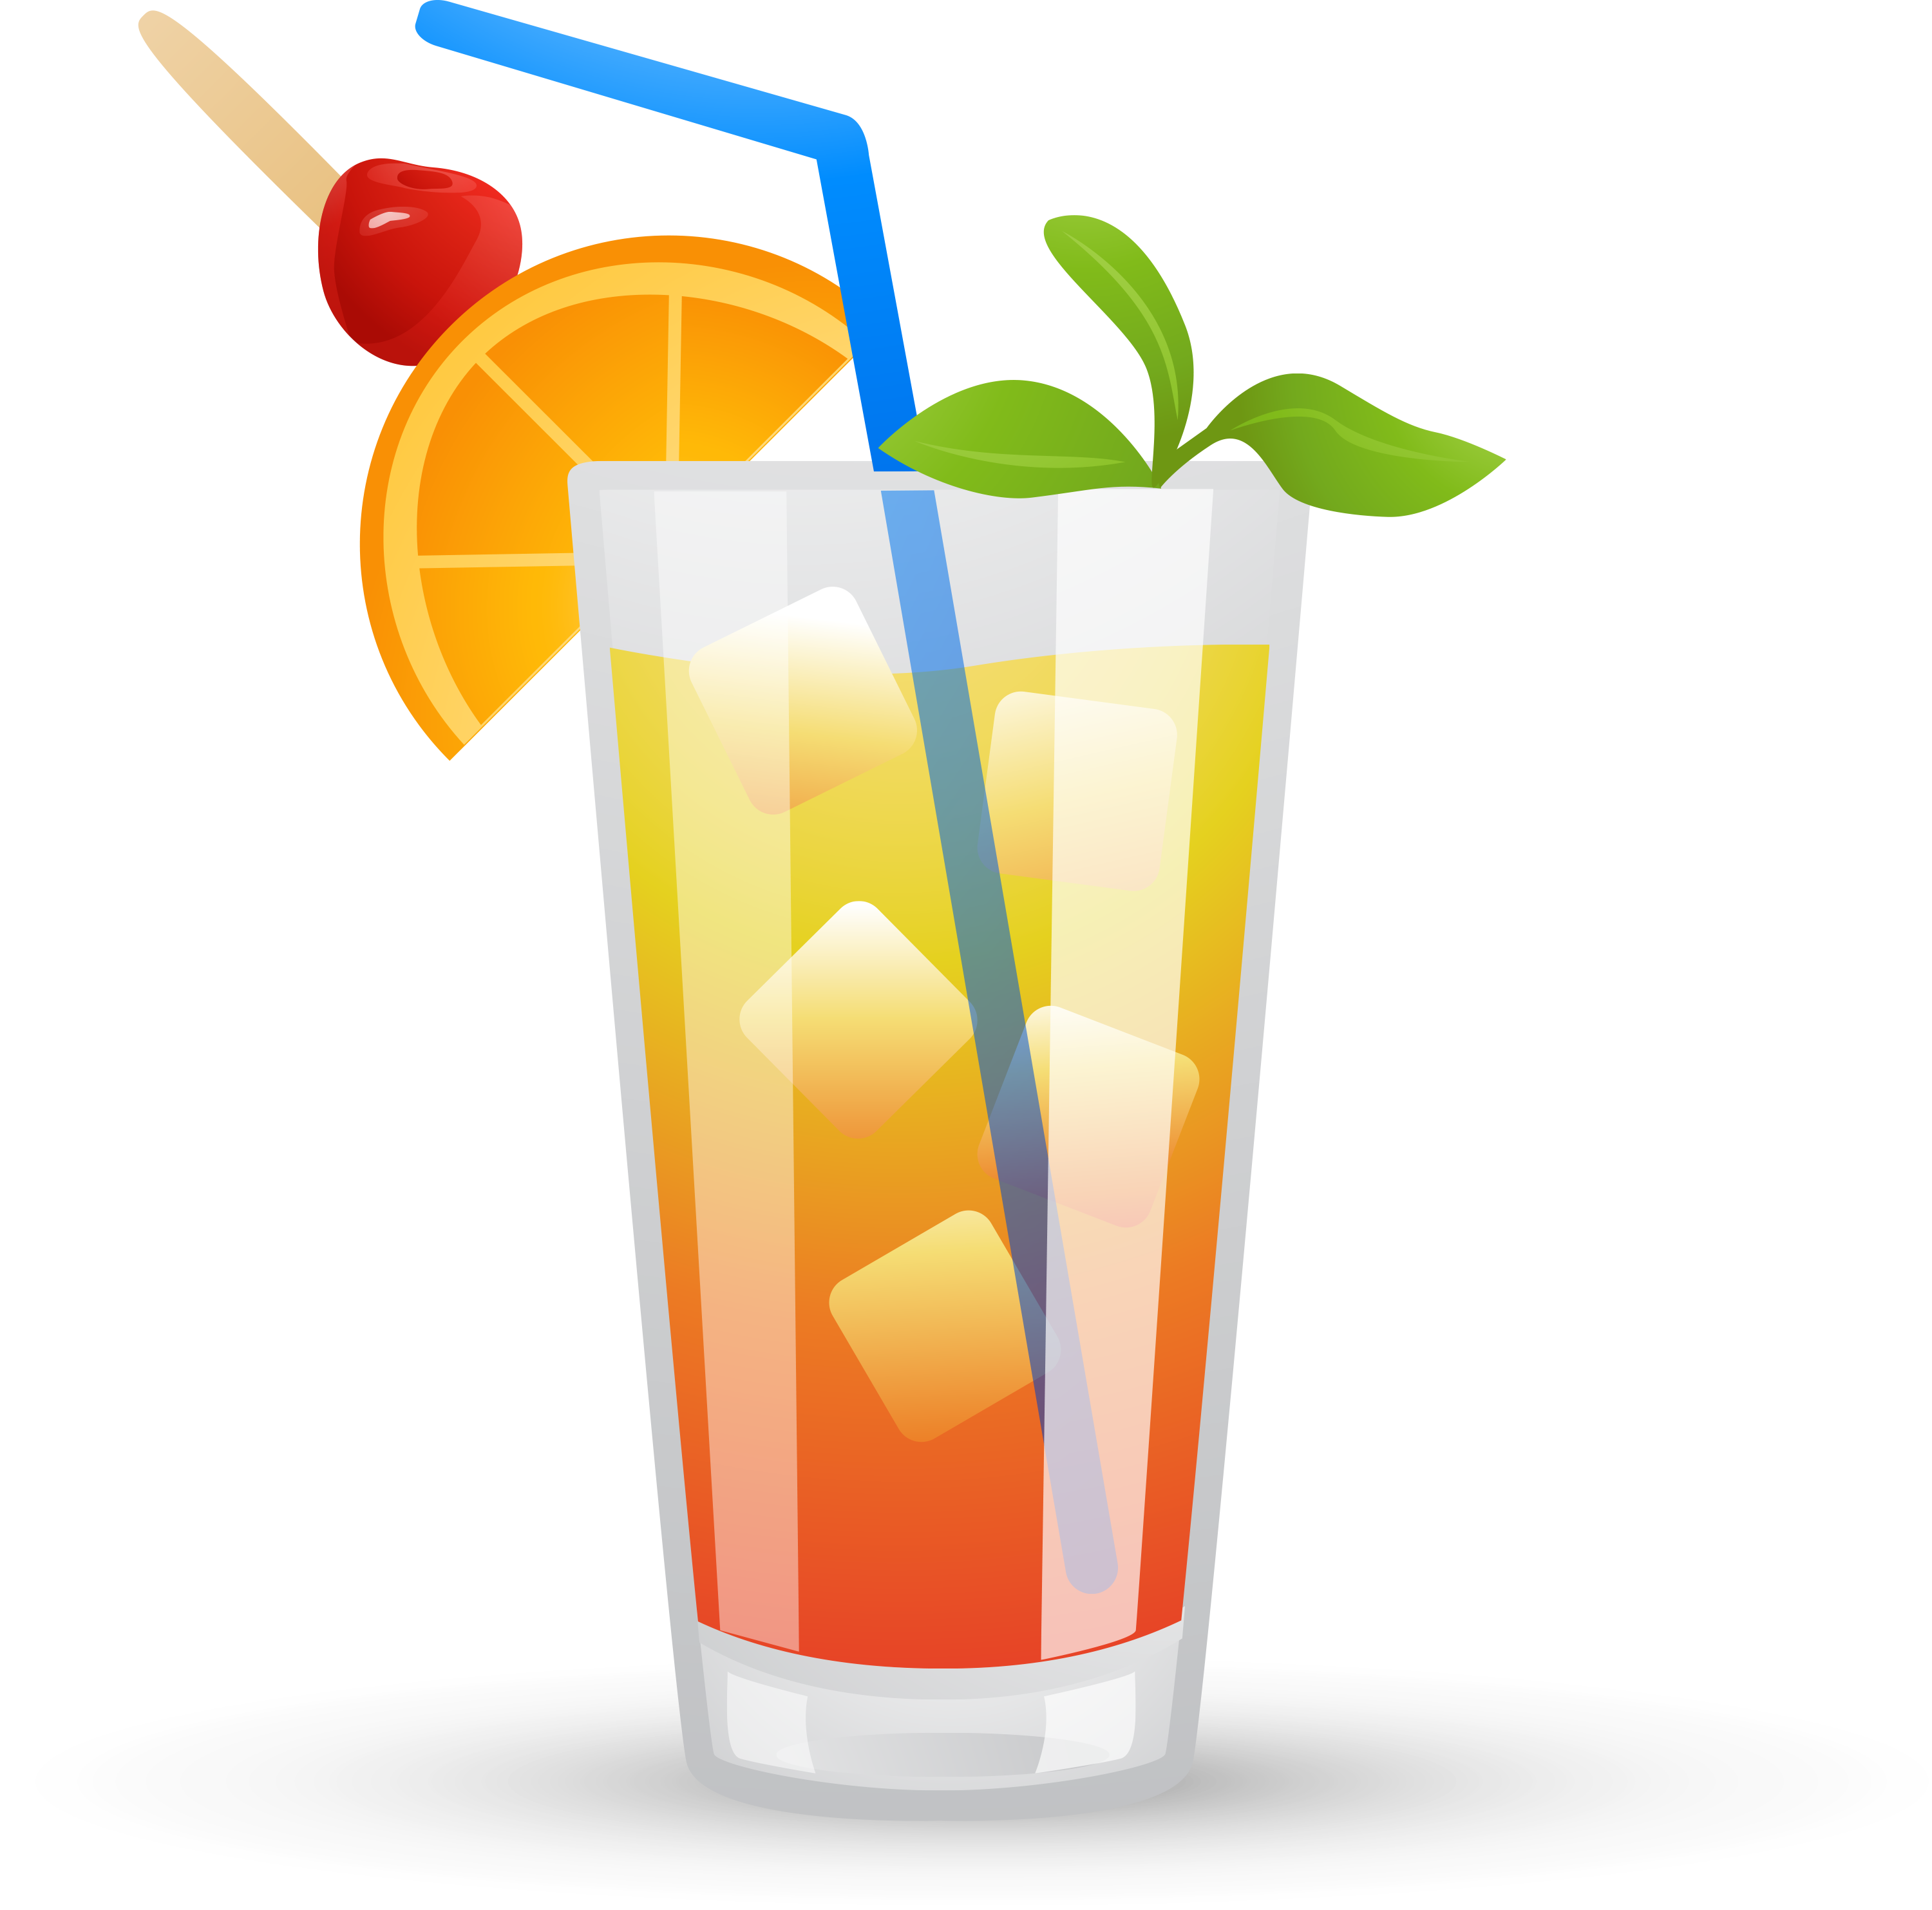 royalty free Drinks vector. Png transparent images pluspng